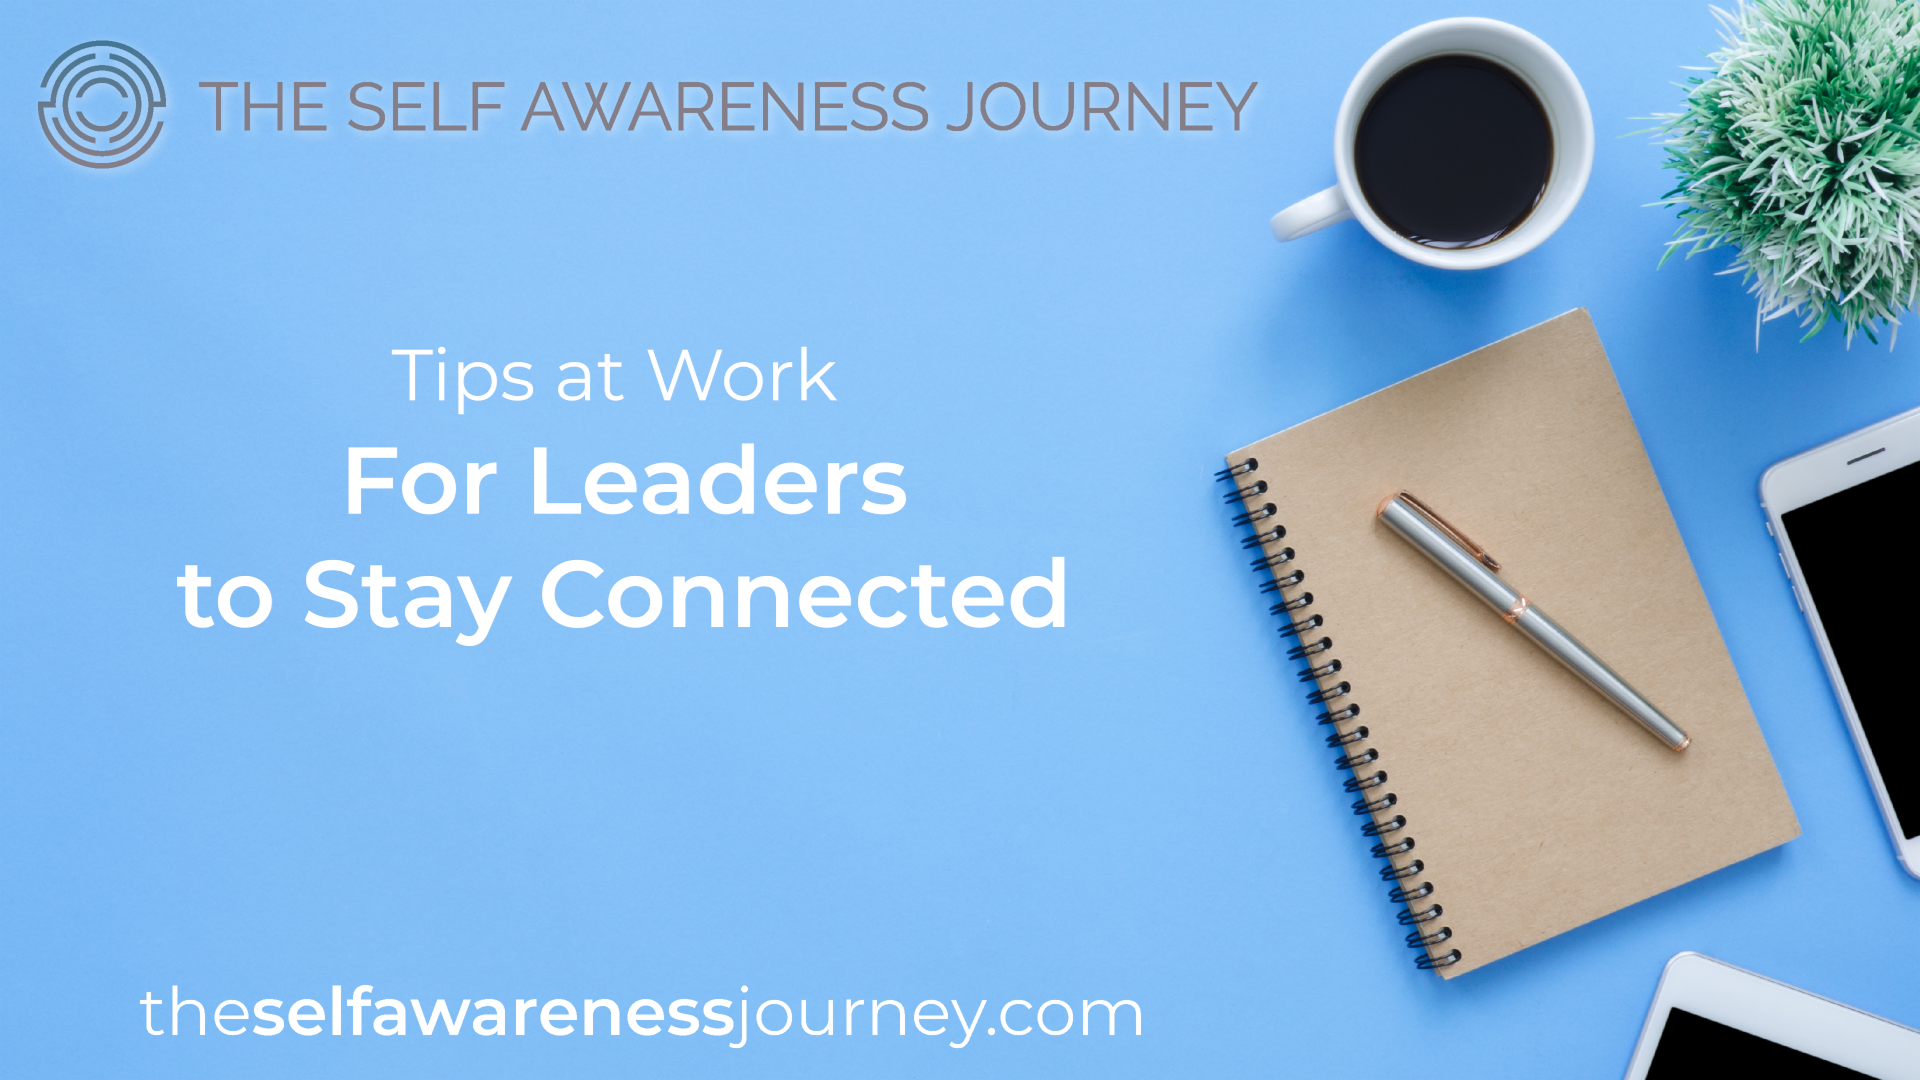 For Leaders to Stay Connected